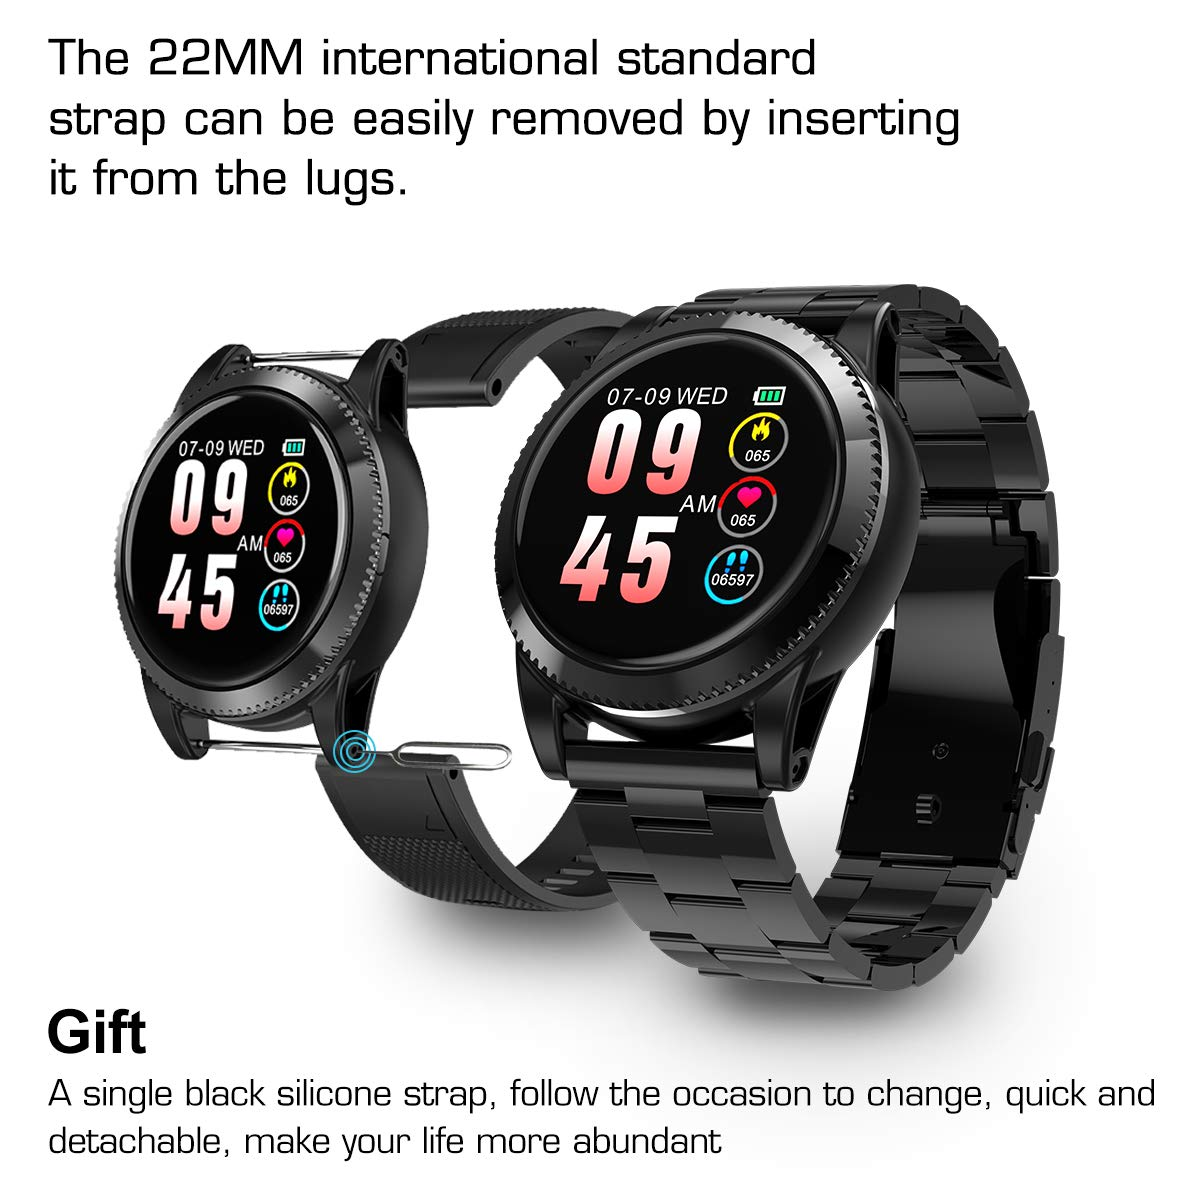 GOKOO Smart Watch for Men, Sports Smartwatch Fitness Tracker with Pedometer Notifications Music Control Blood Pressure Heart Rate Monitor Camera Color Touch Screen for Android iOS (Black) by GOKOO (Image #4)